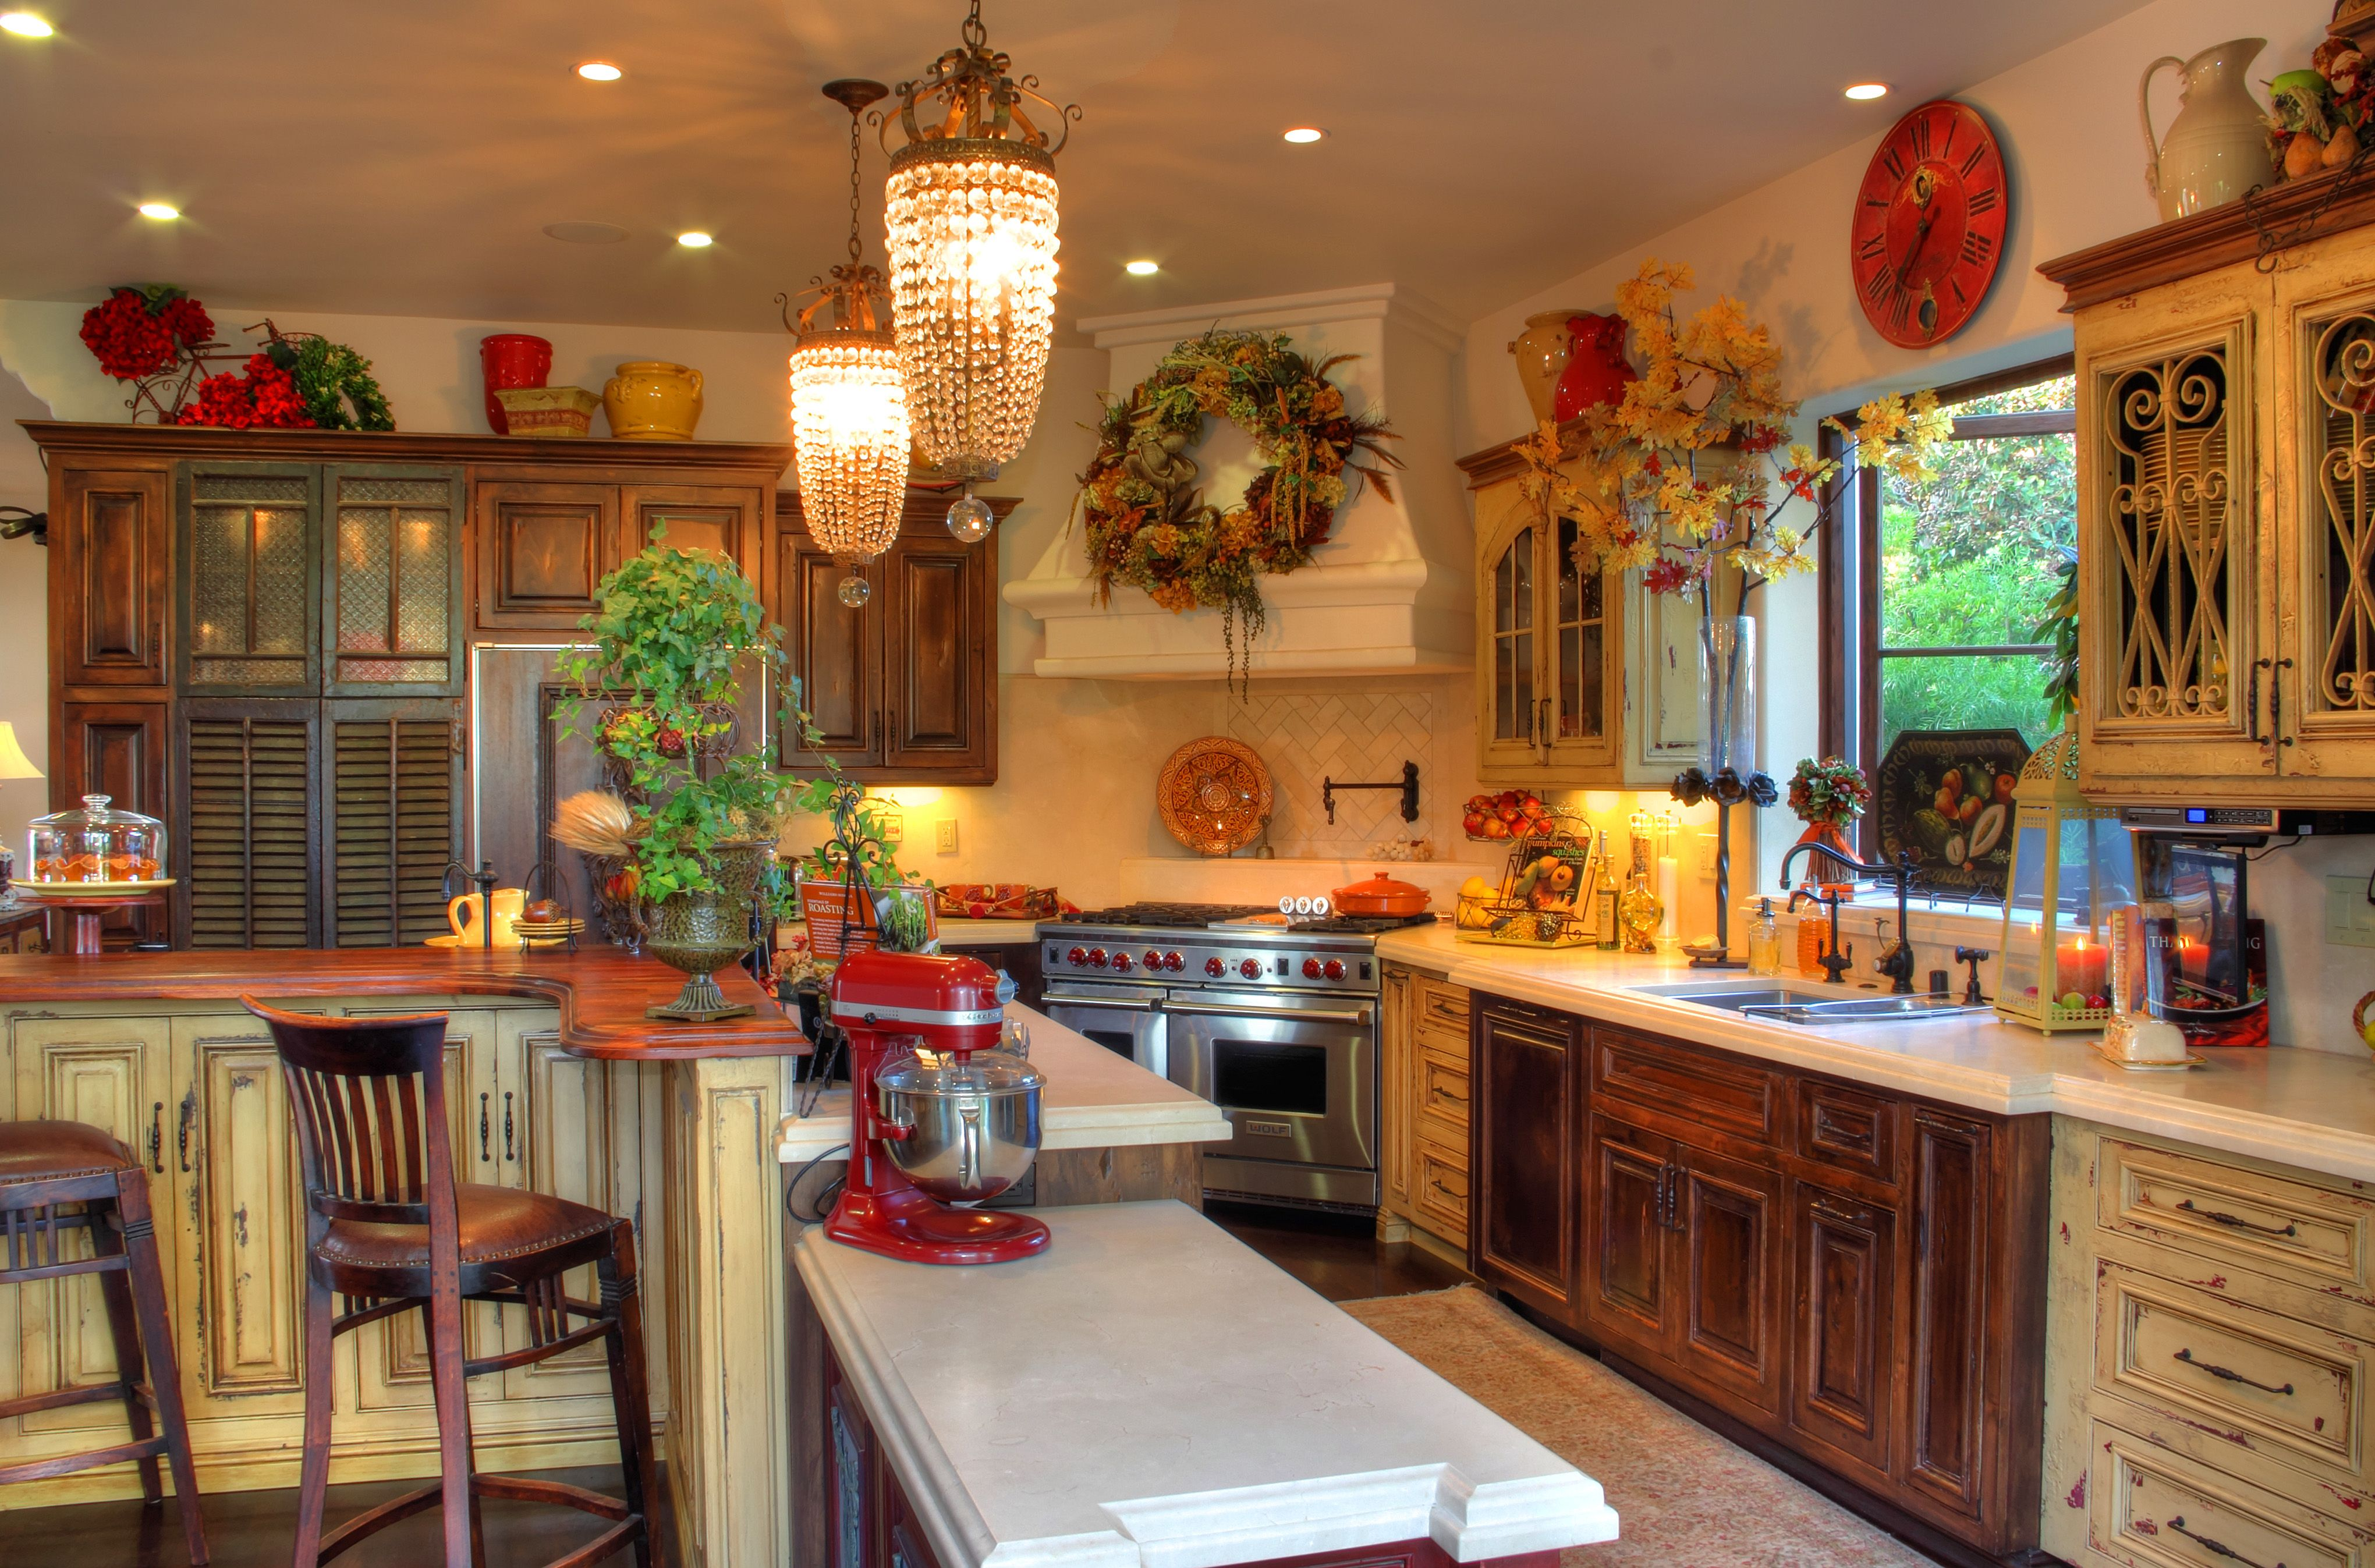 Spanish Colonial Revival Style Interior Revival Spanish